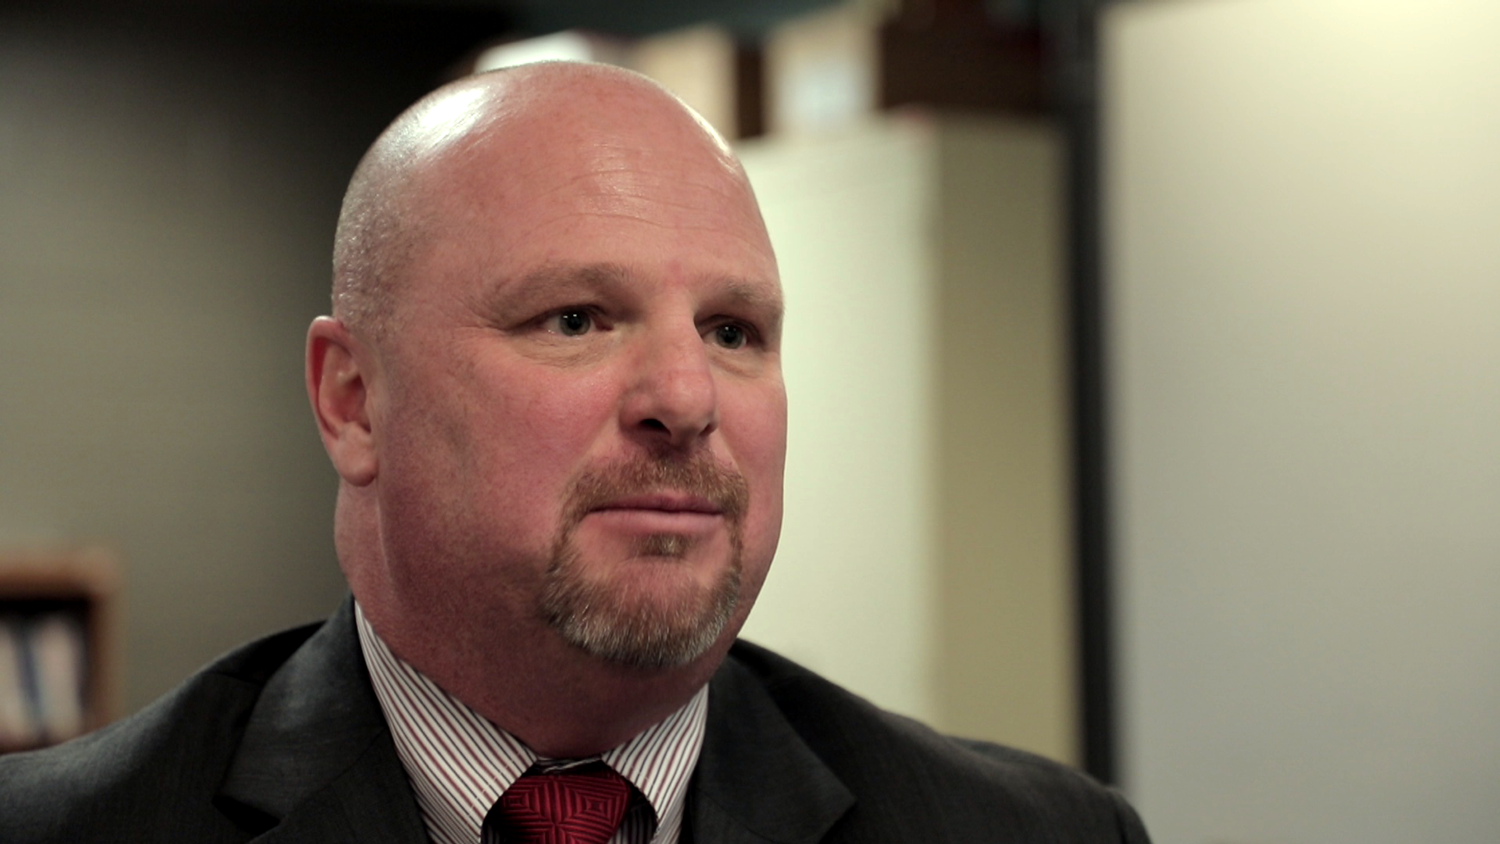 Charles Johnson is the warden of Kewanee Life Skills Re-Entry Center. (WBEZ/Andrew Gill)